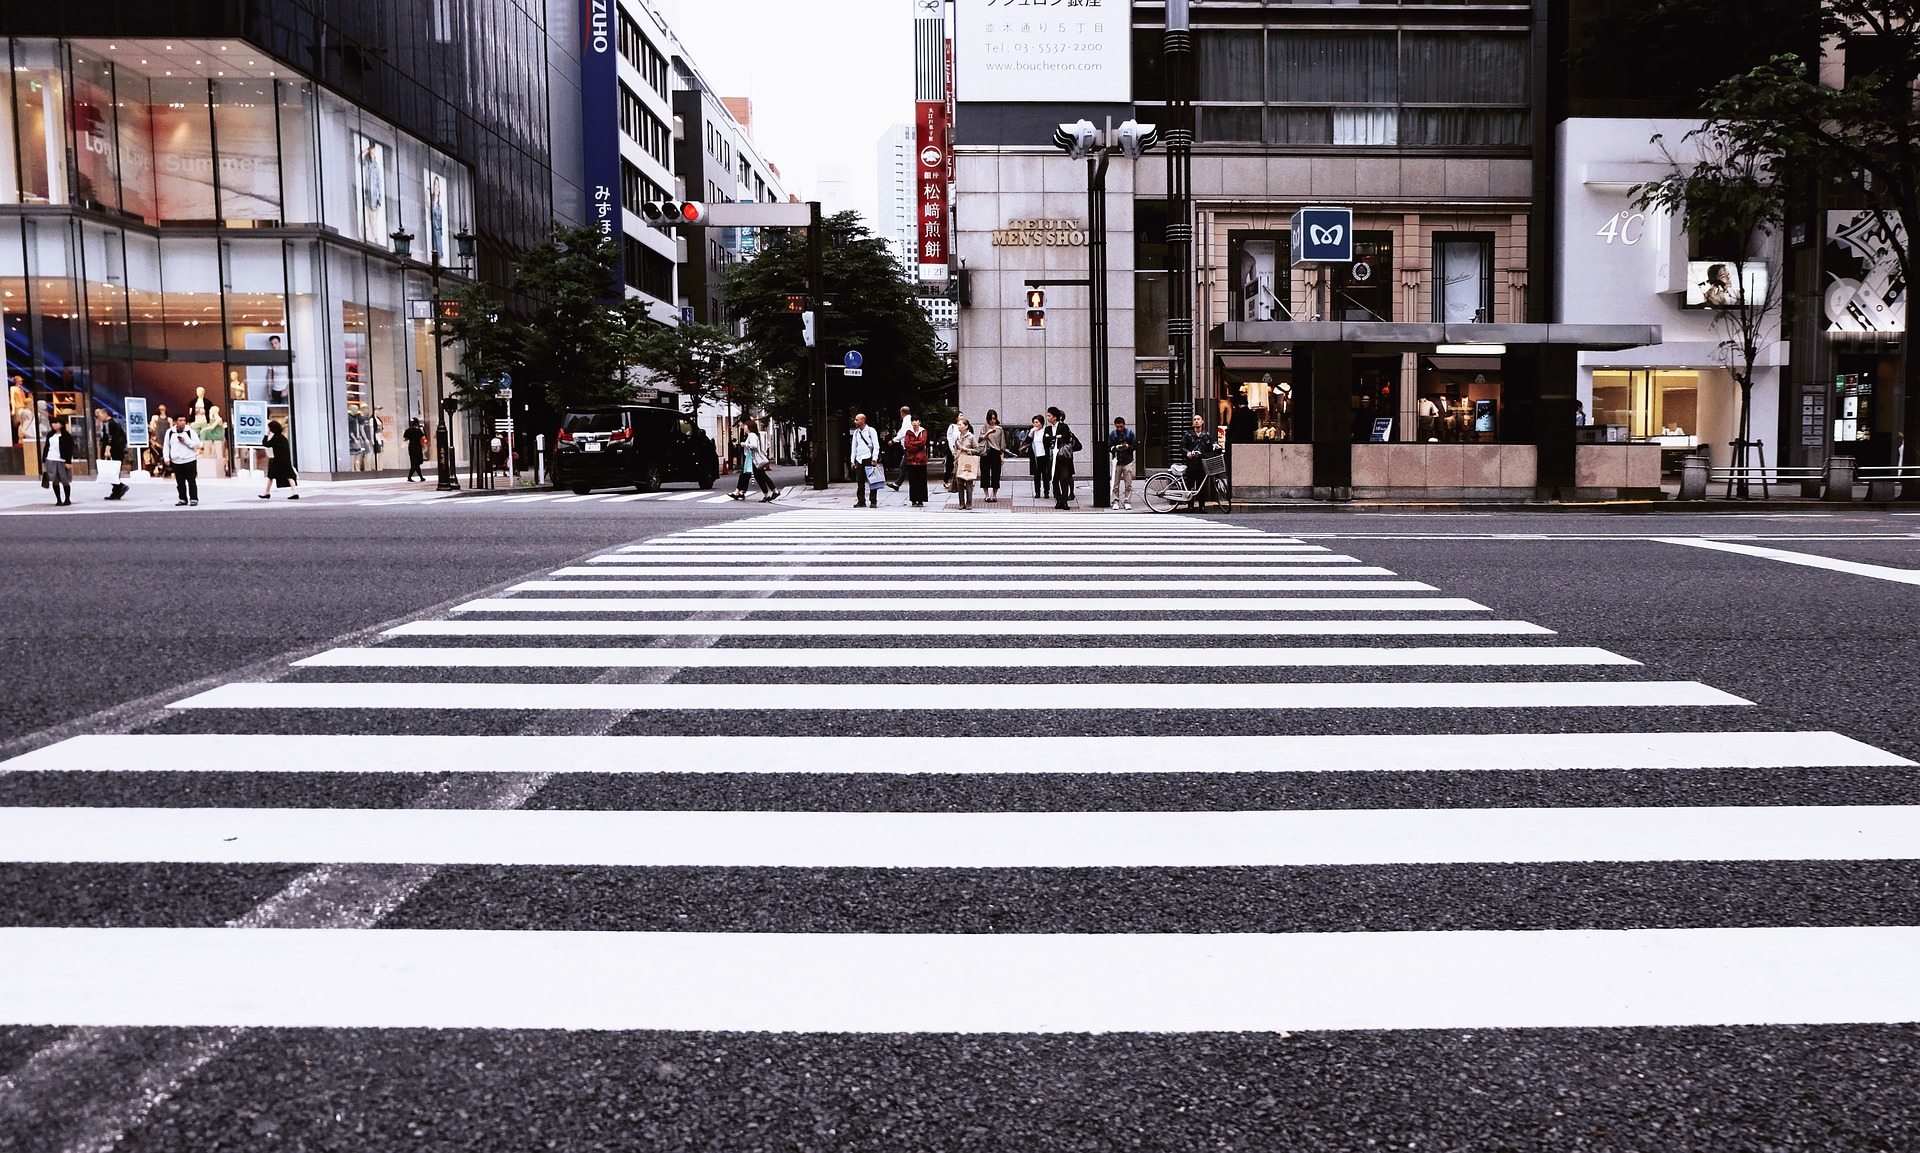 A pedestrian crossing in a big city